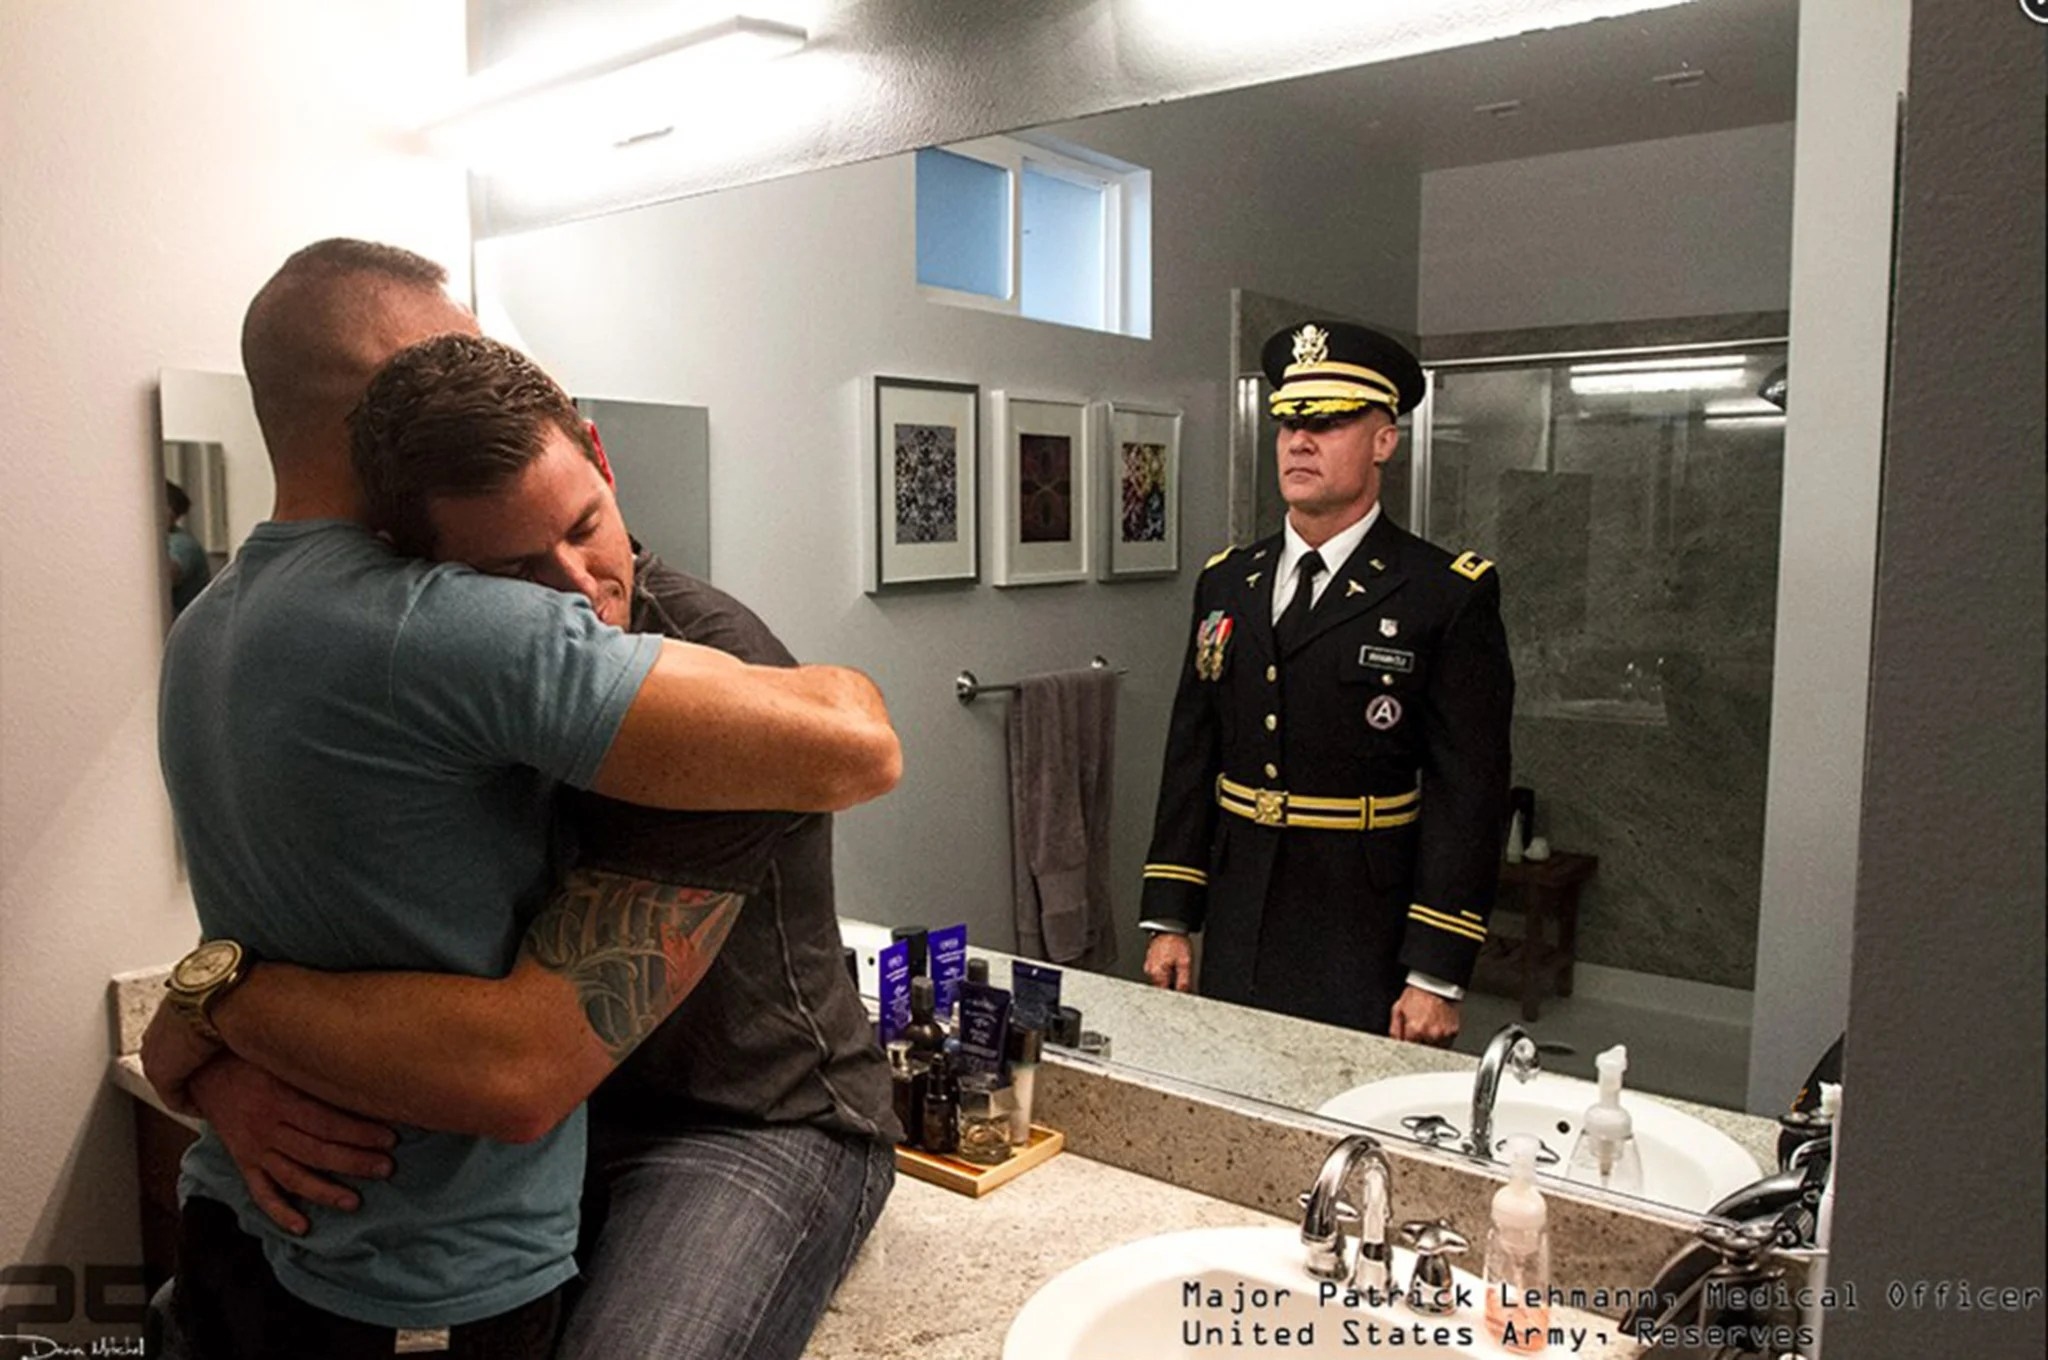 Ptsd Photo Series Documents What The Disorder Is Really